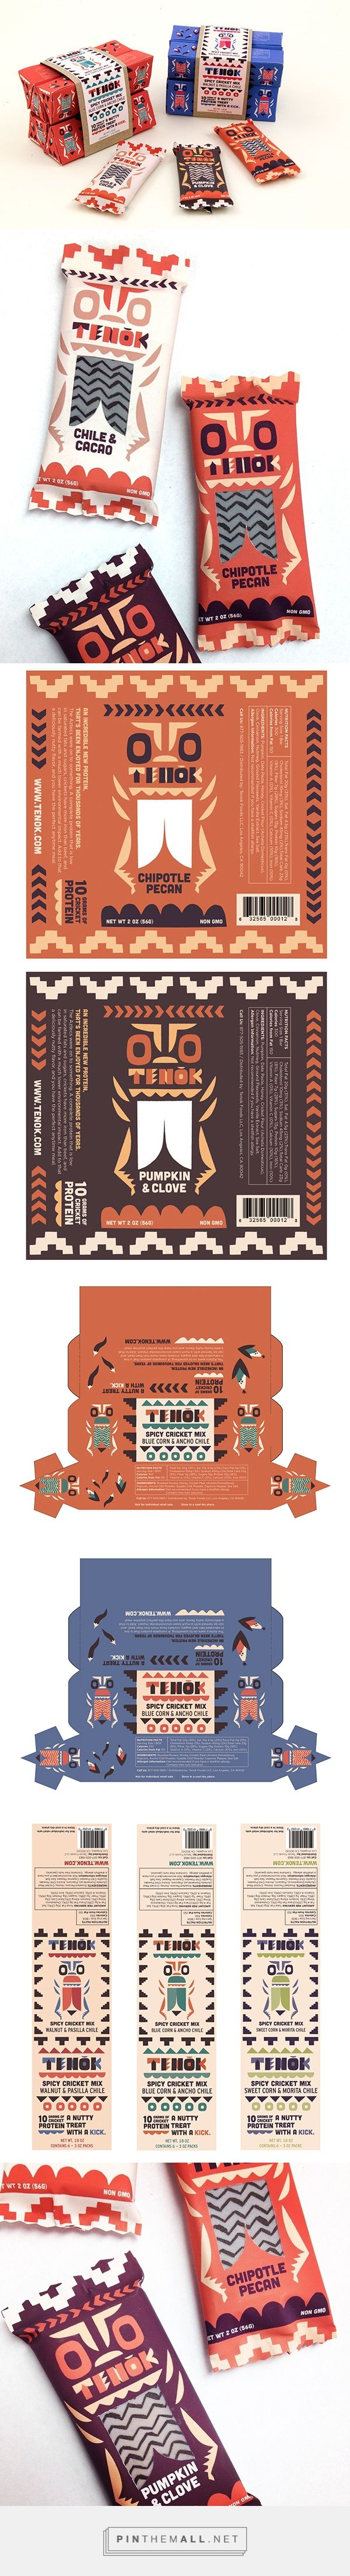 Tenok Cricket Snacks on Behance by Alexander Vidal curated by Packaging Diva PD.